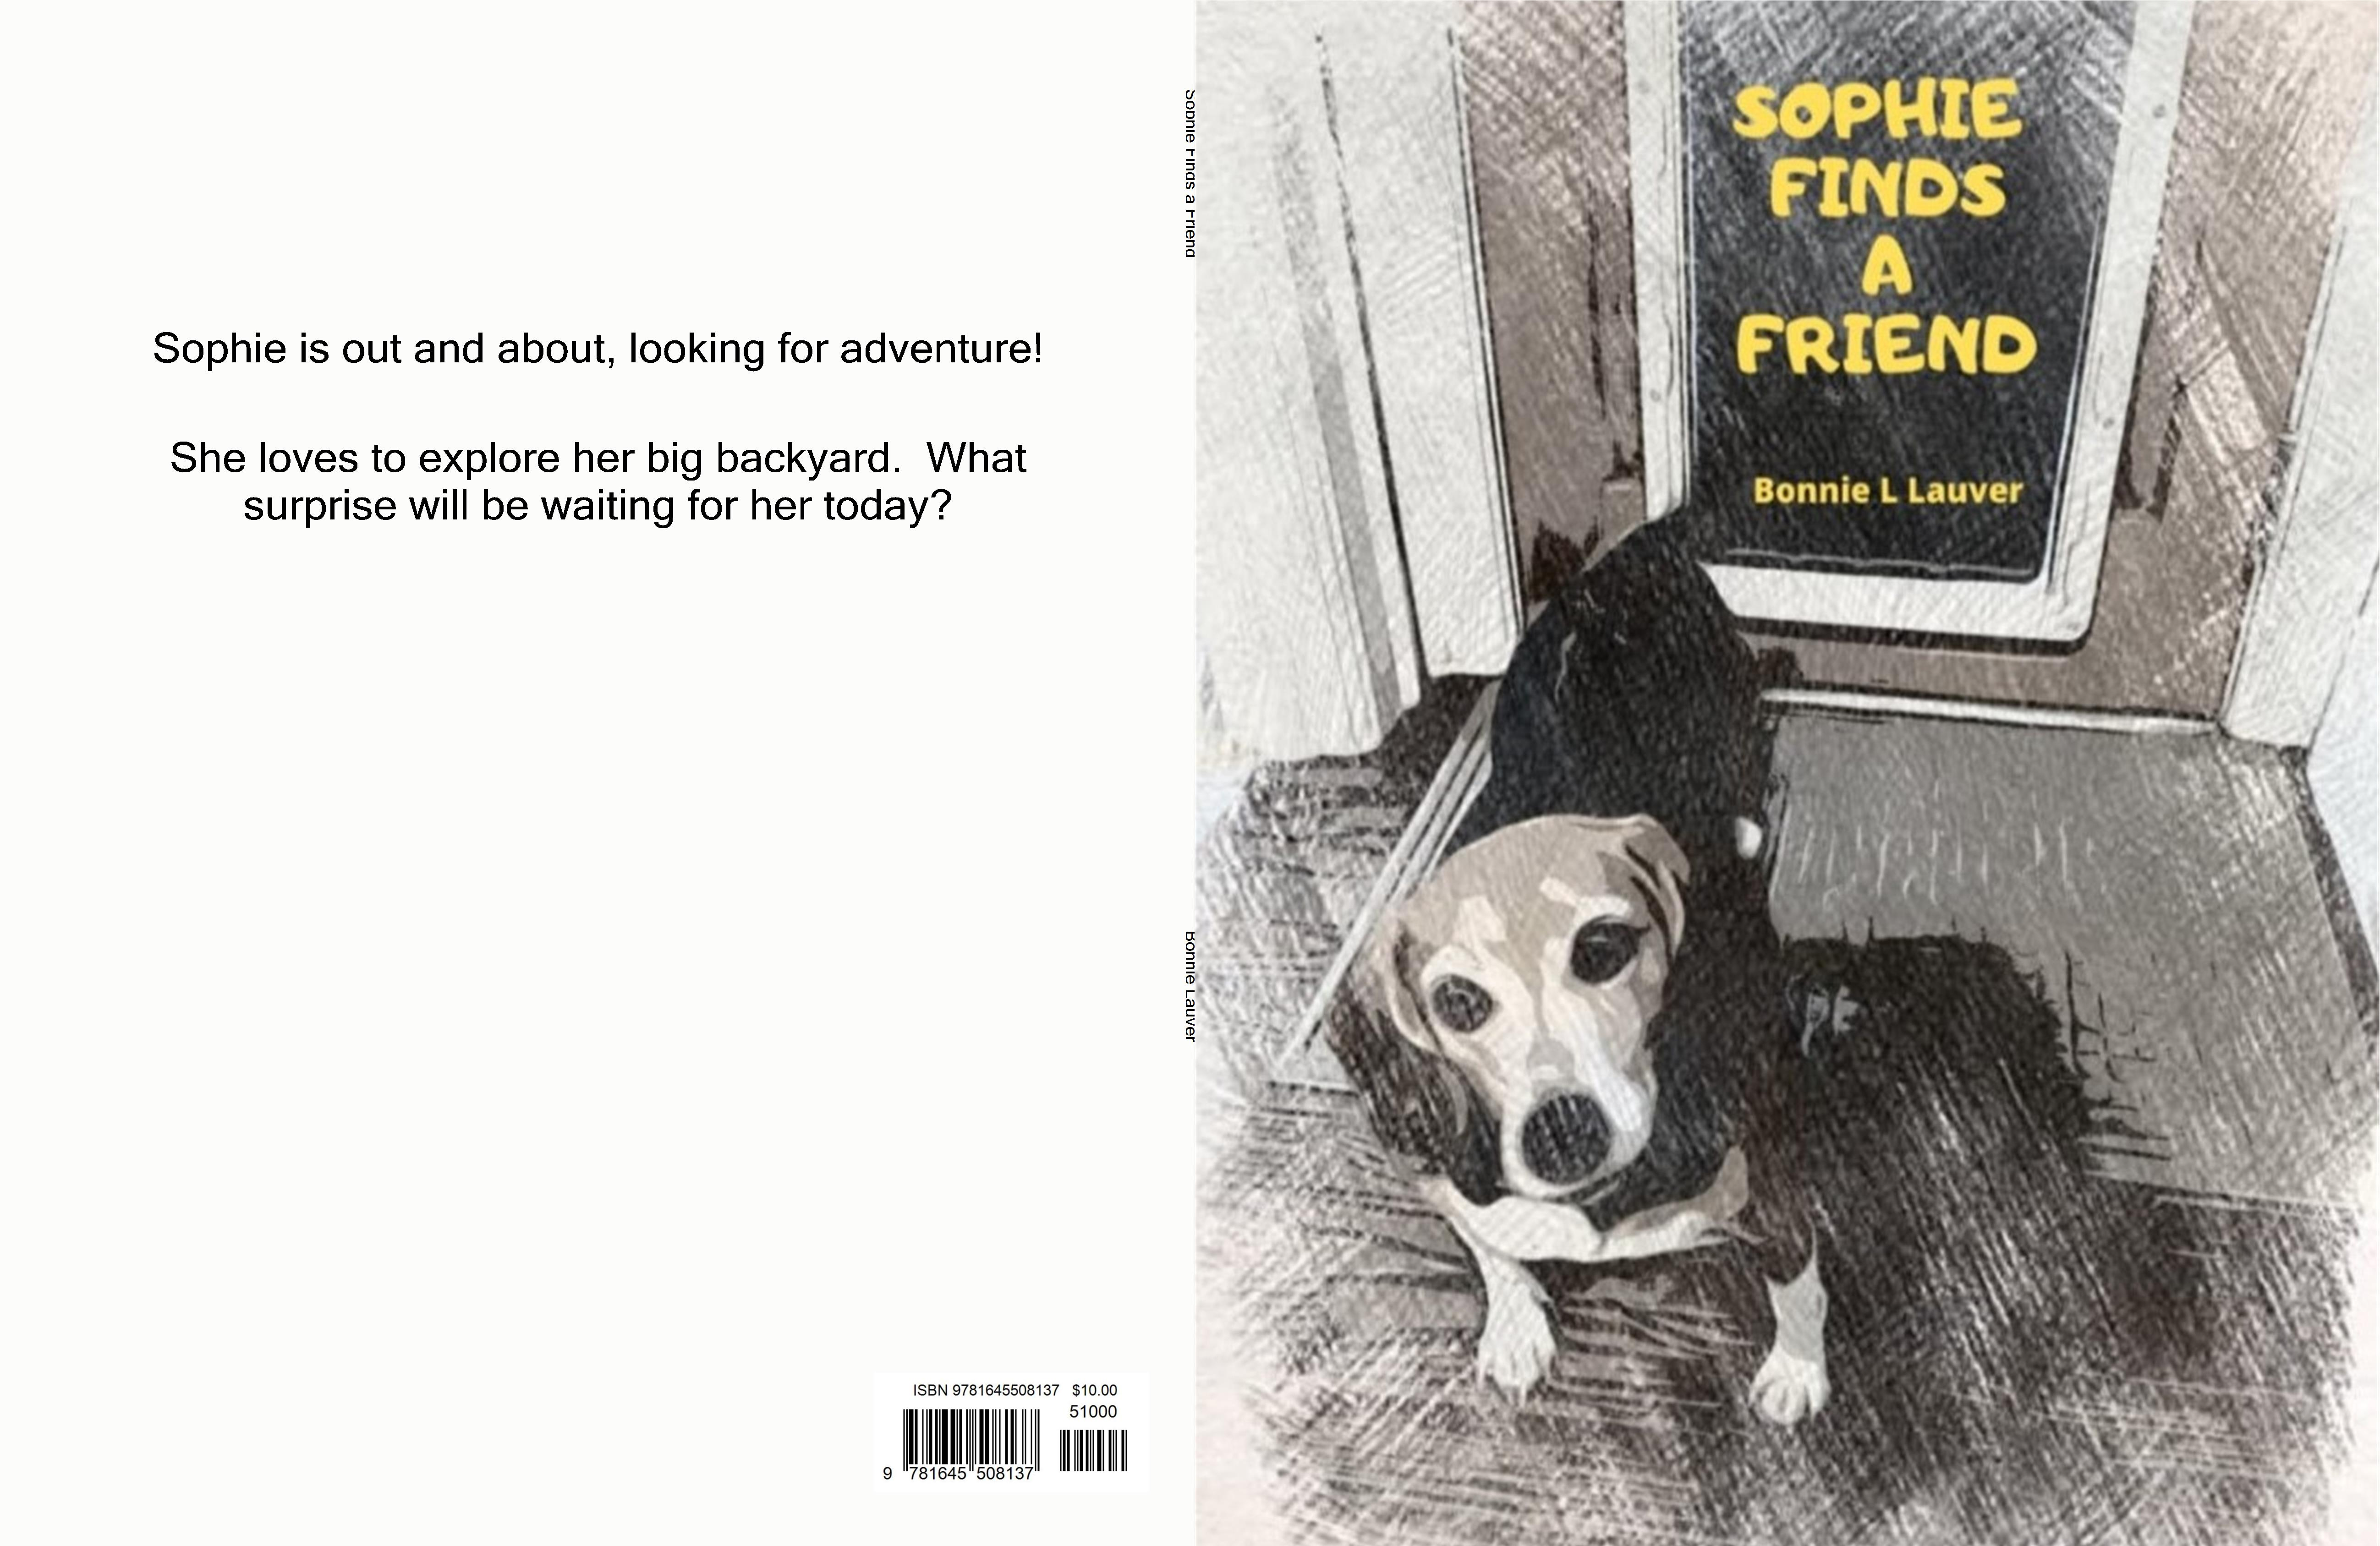 Sophie Finds a Friend cover image